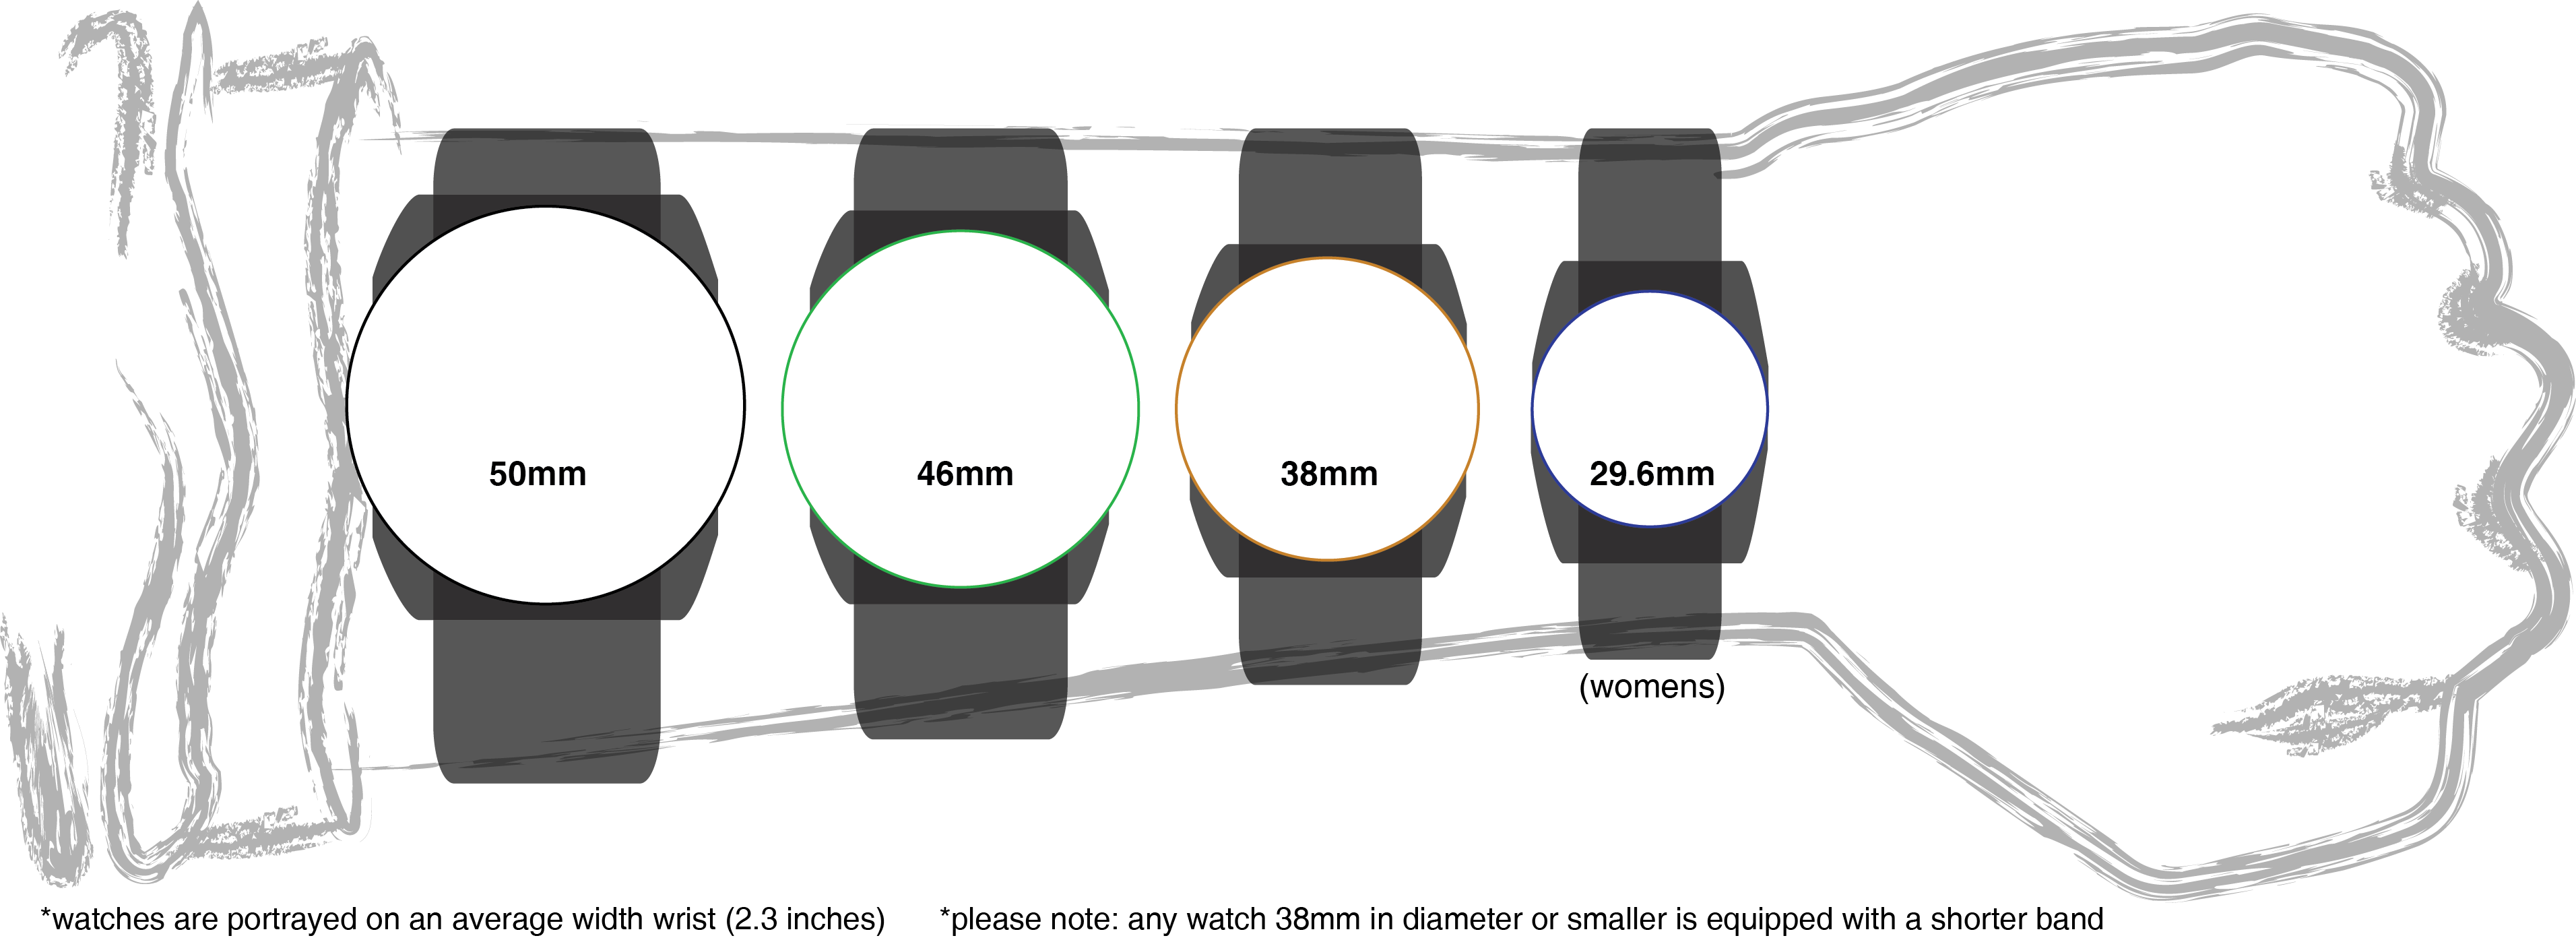 Watch Size Guide